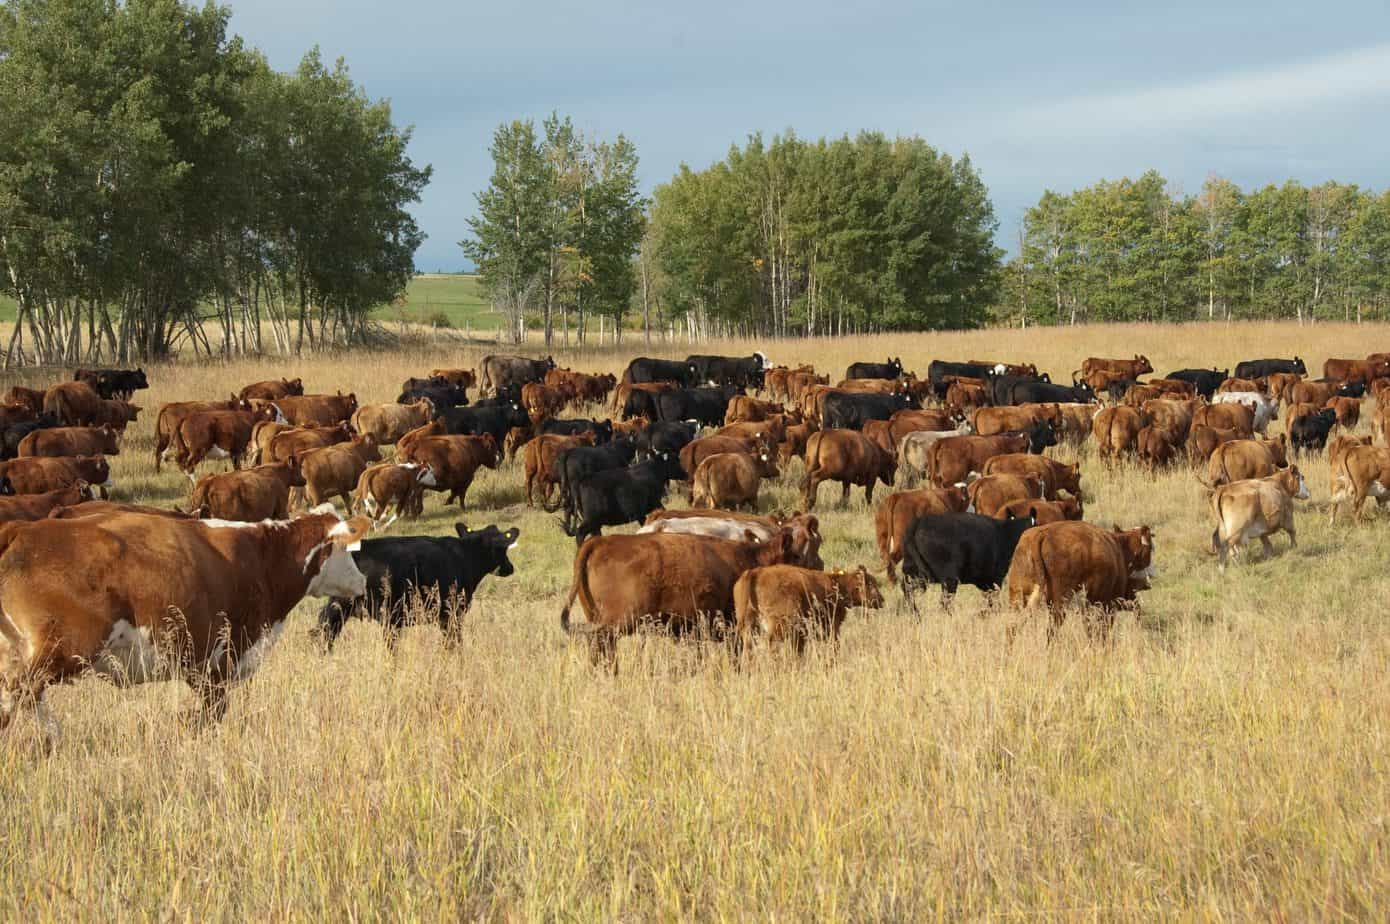 Greenhouse Gas Emissions + Beef Production